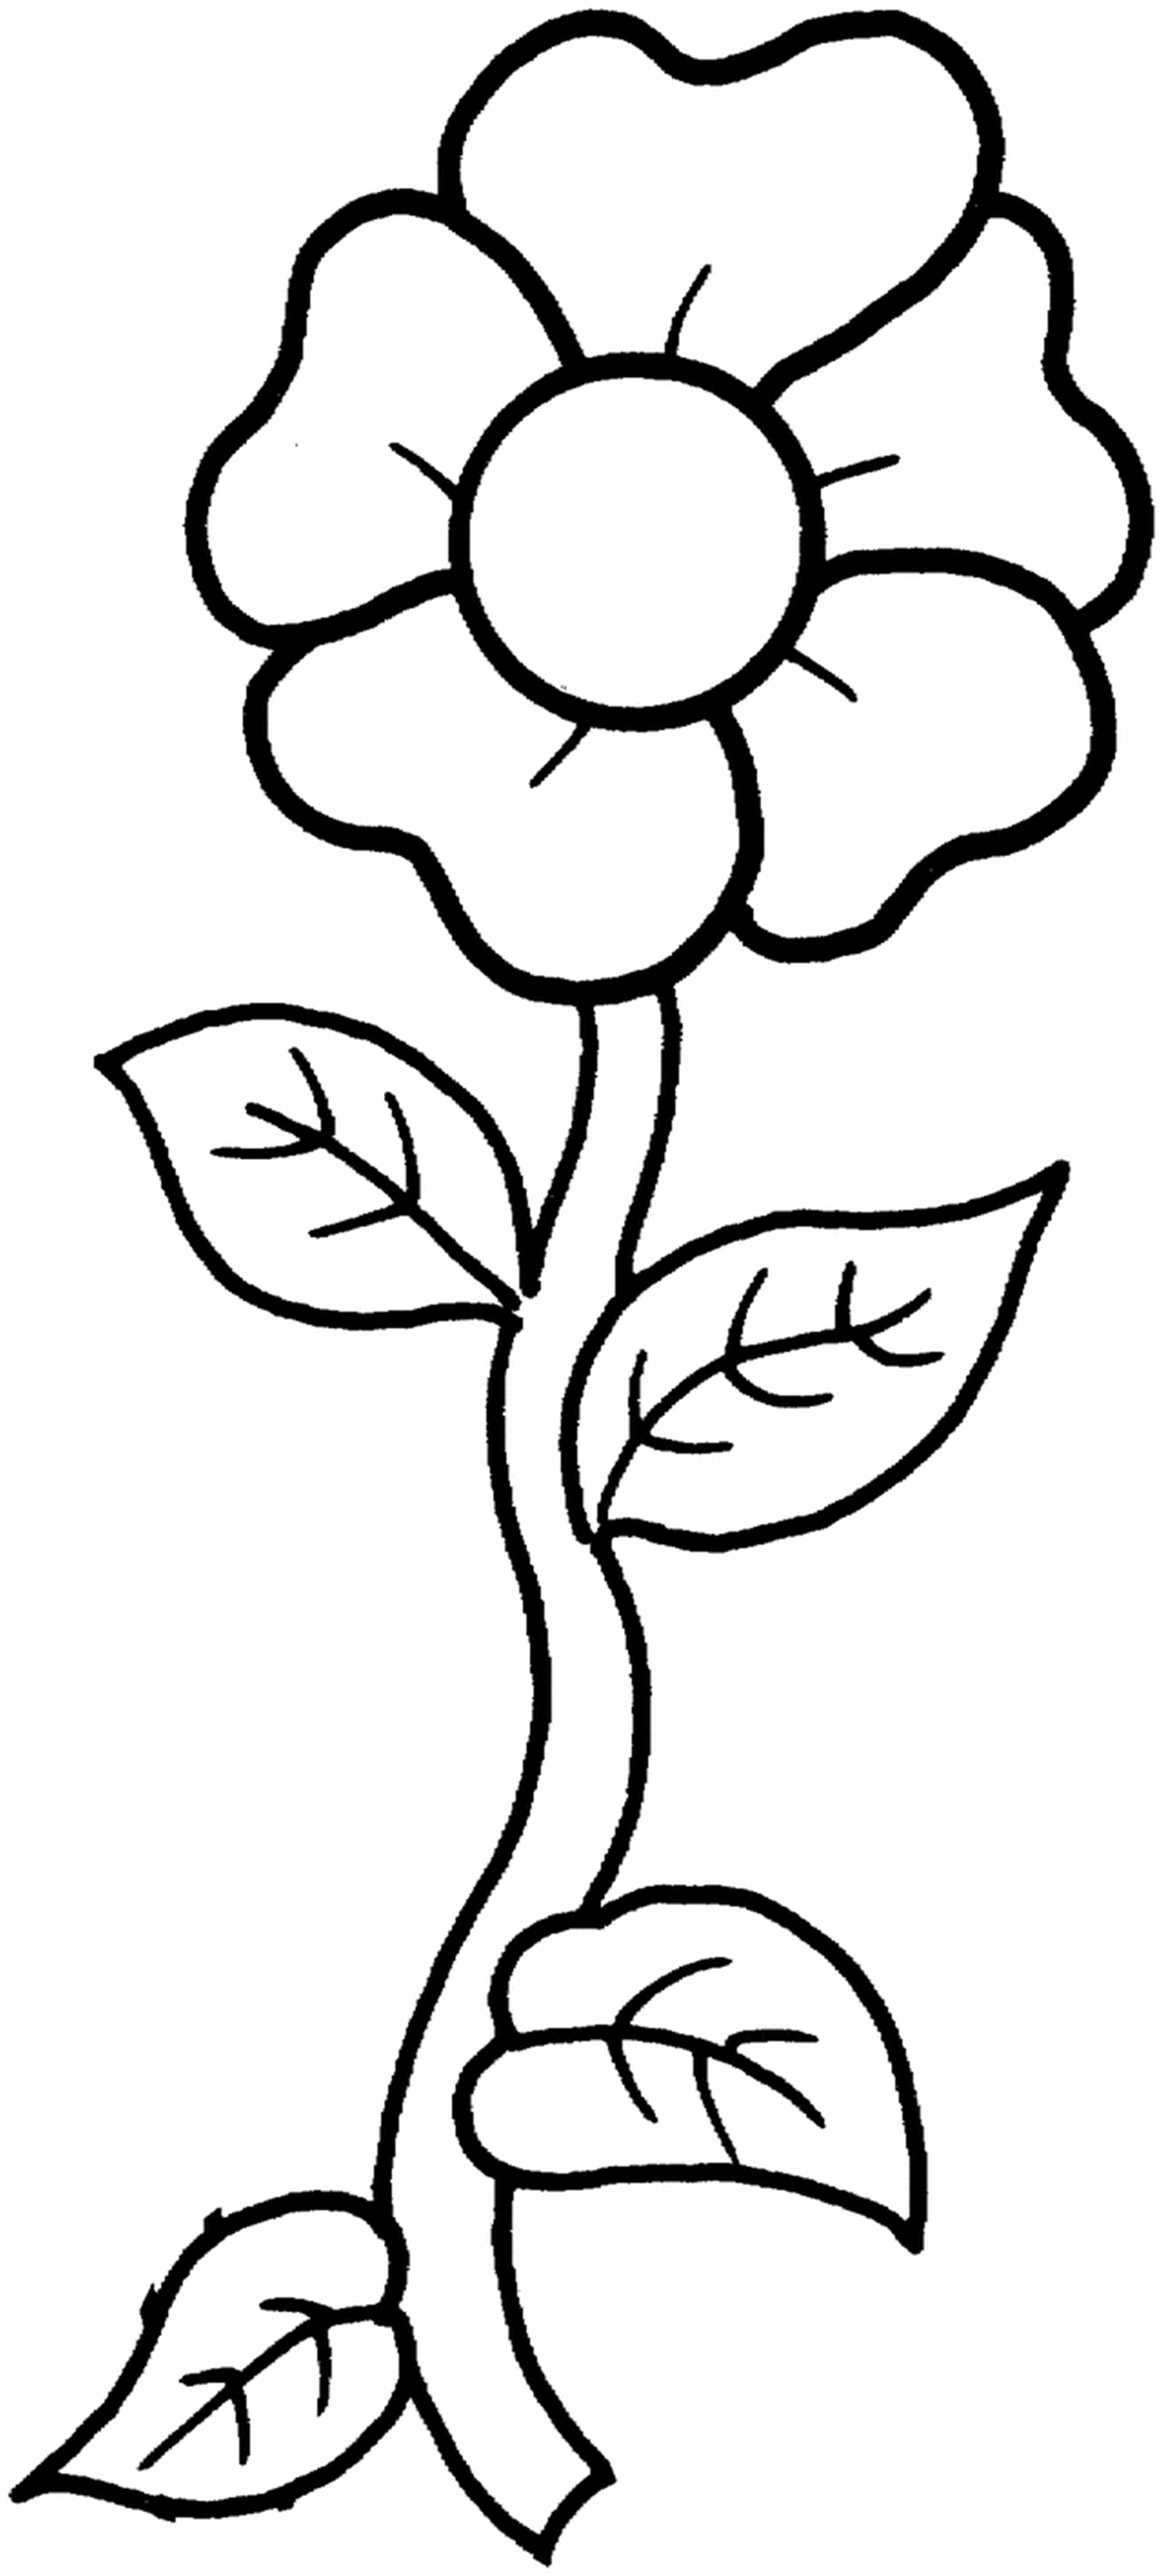 coloring image of a flower free printable flower coloring pages for kids cool2bkids image flower coloring of a